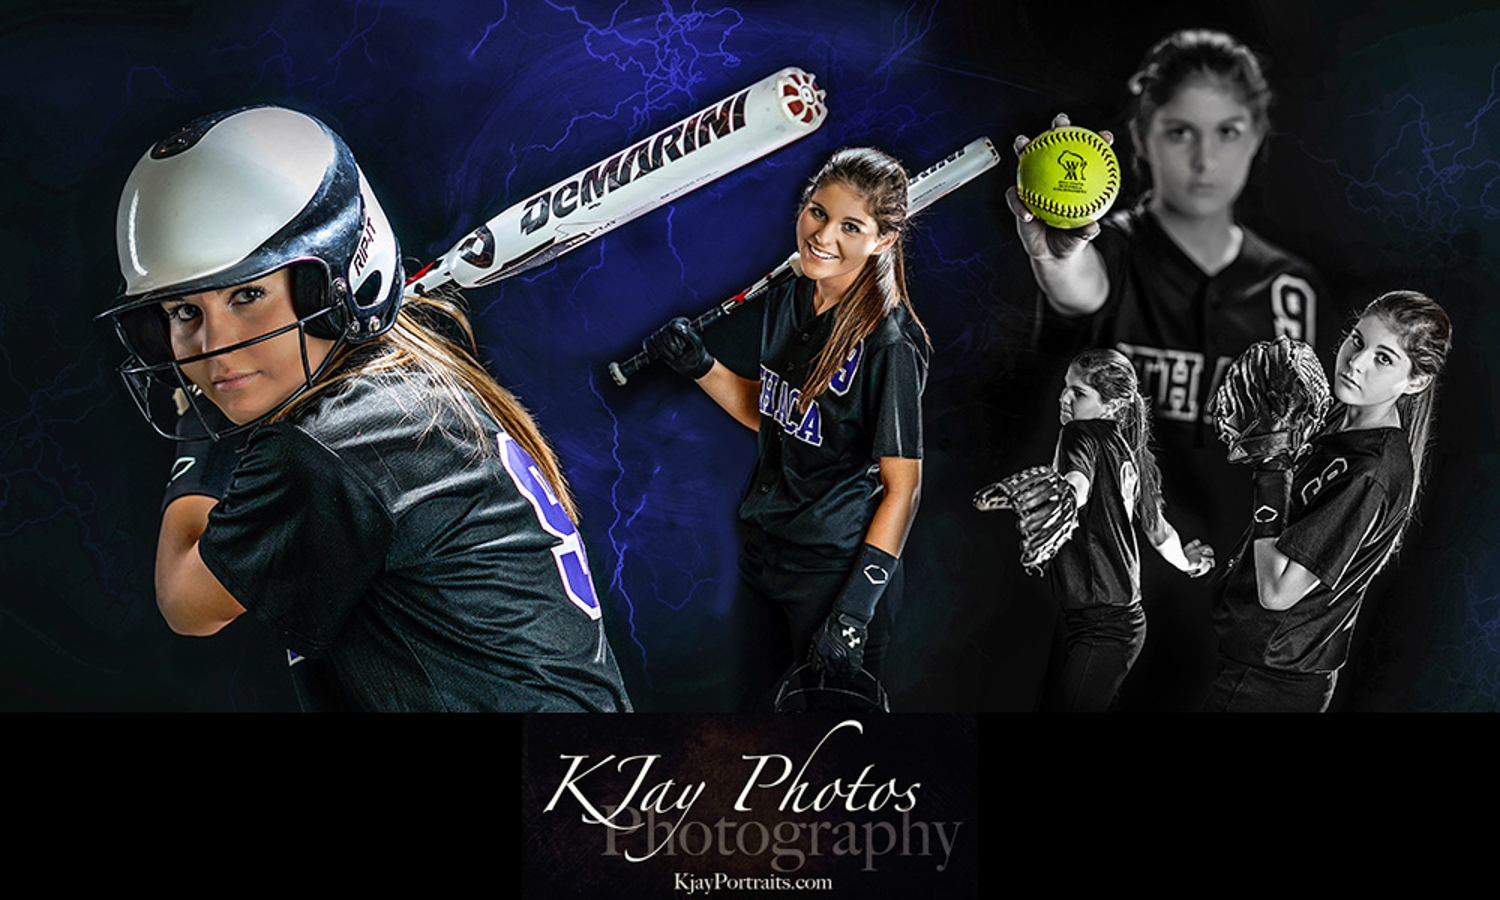 Softball senior pictures for girls.  K Jay Photos Photography, Madison WI.